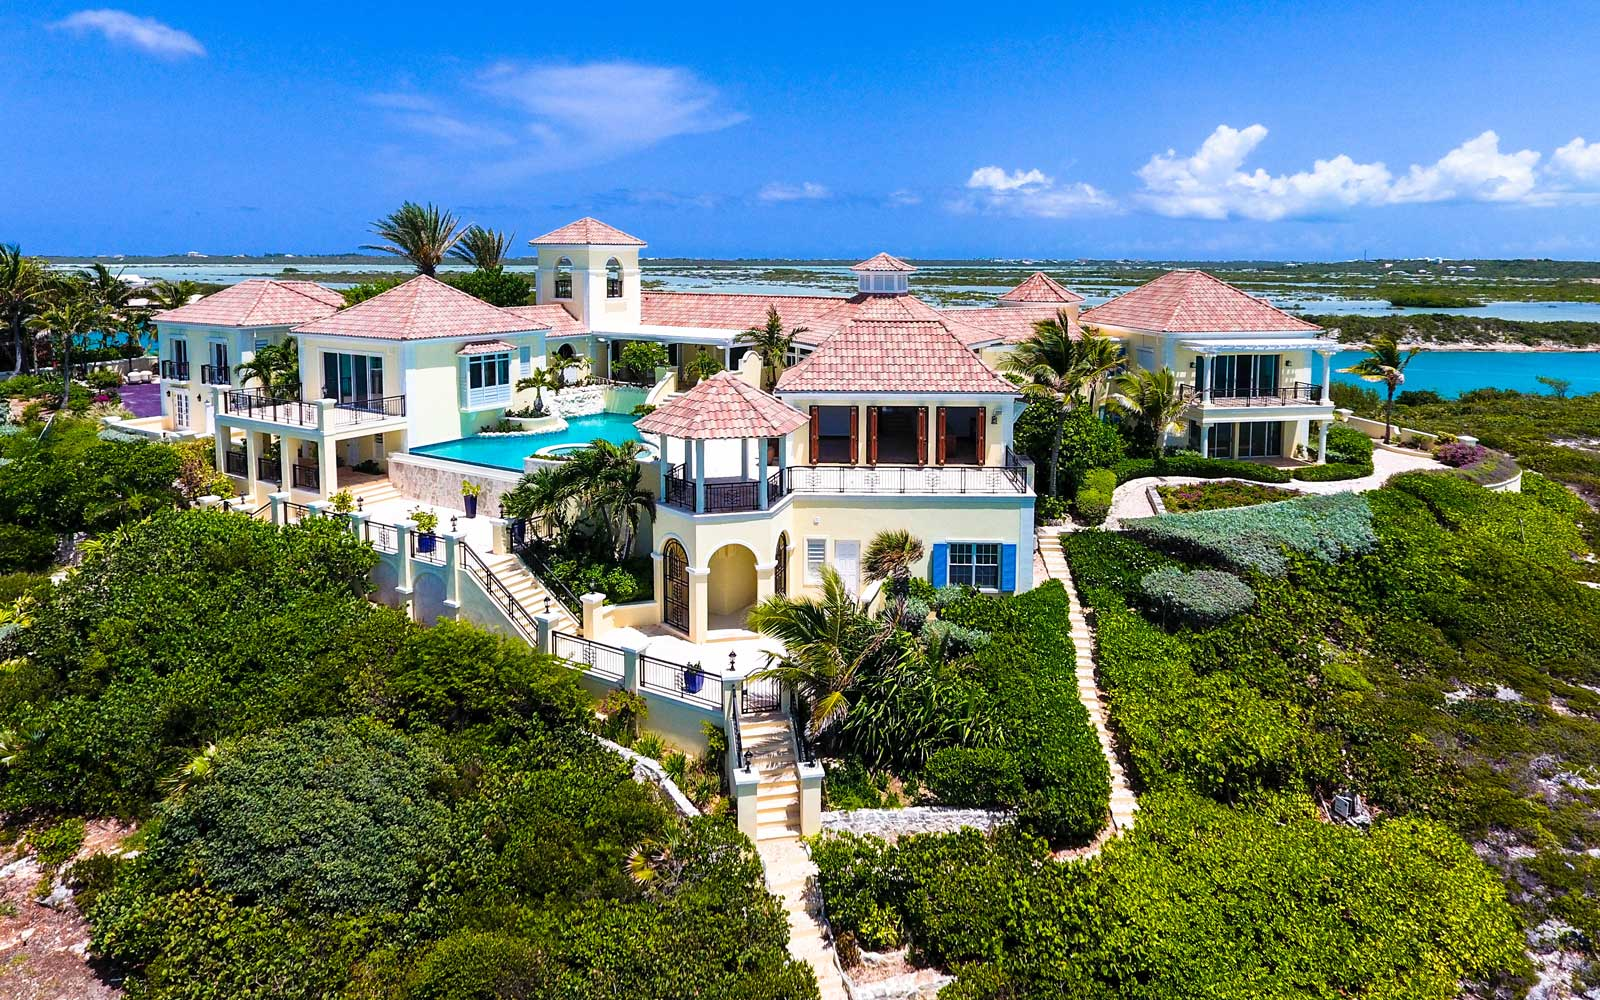 Prince's Estate in Turks and Caicos